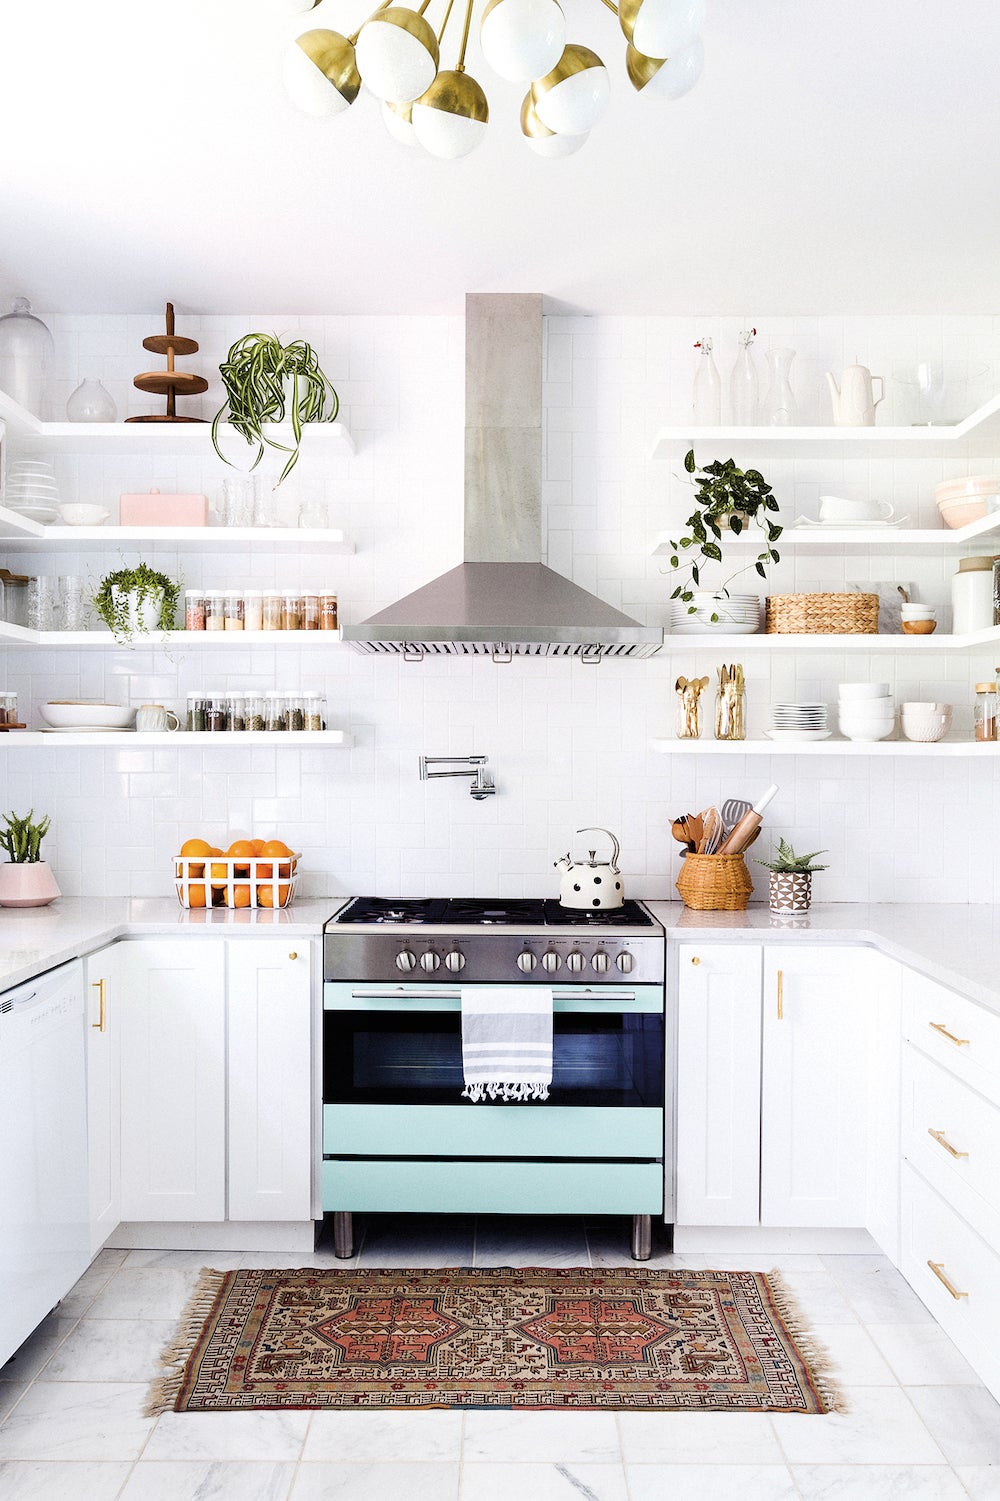 kitchen with mint stove